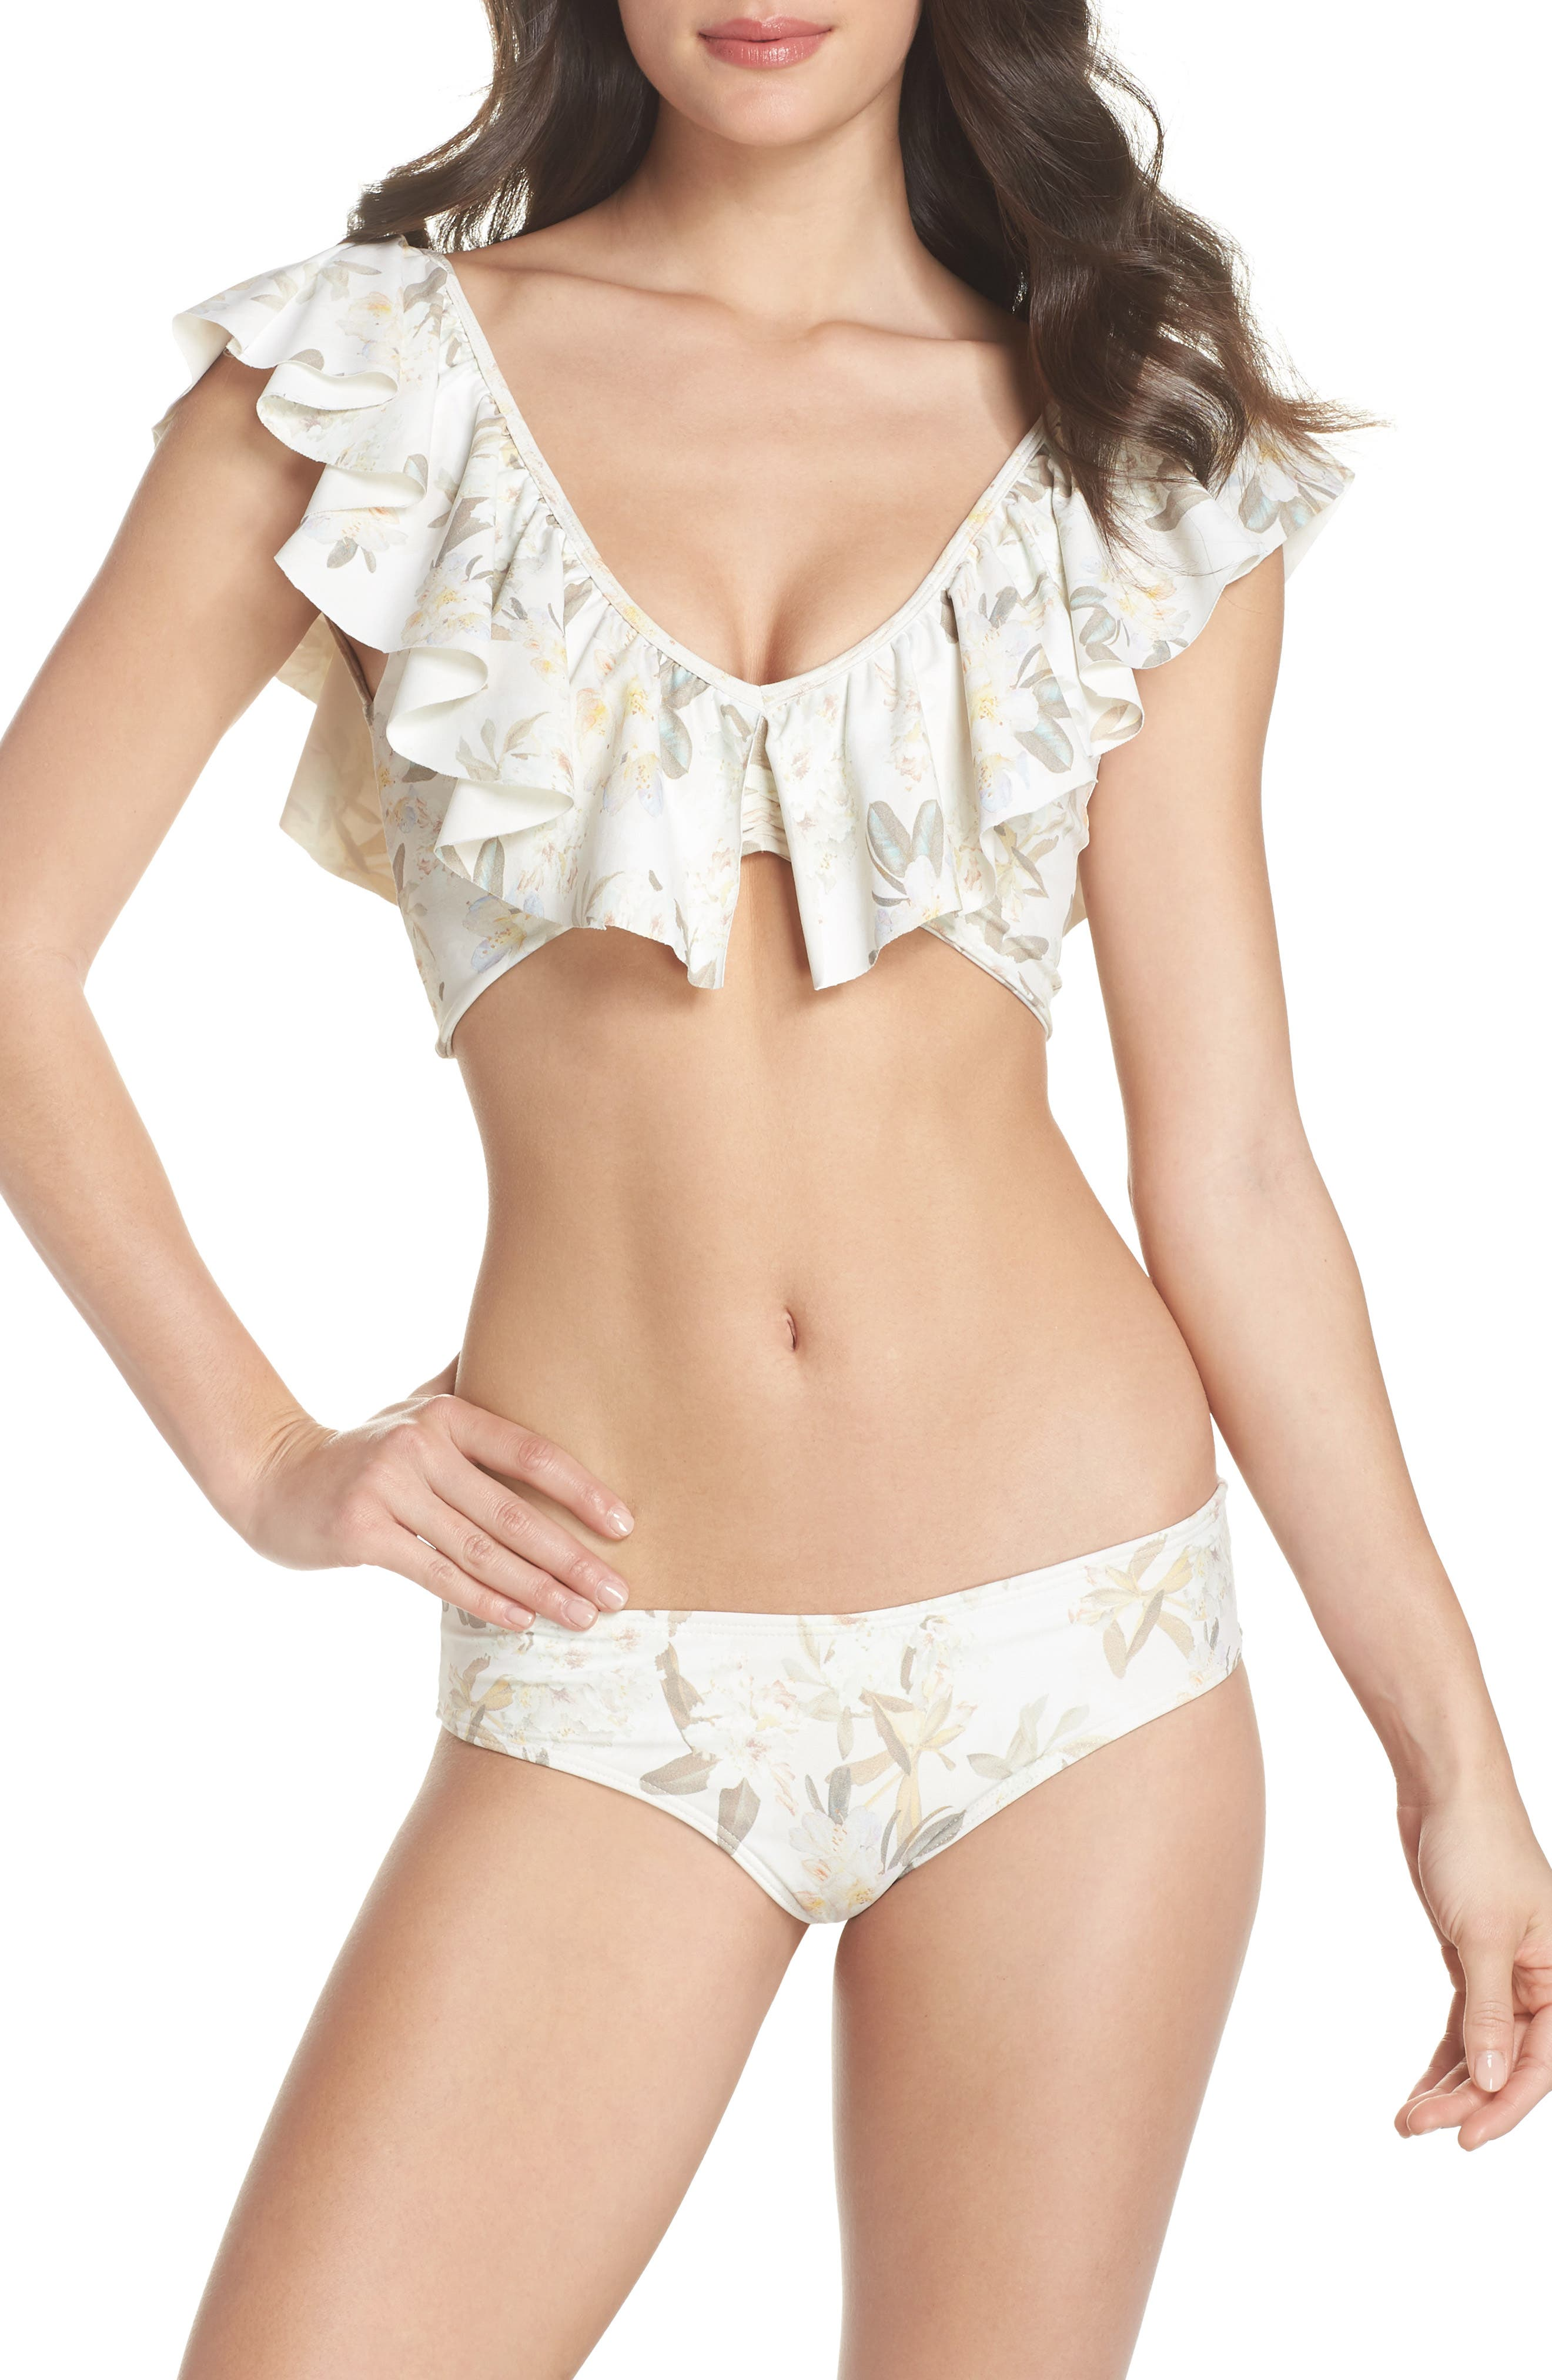 Sandrita Bikini Top,                             Alternate thumbnail 7, color,                             ETE FLORAL WHITE